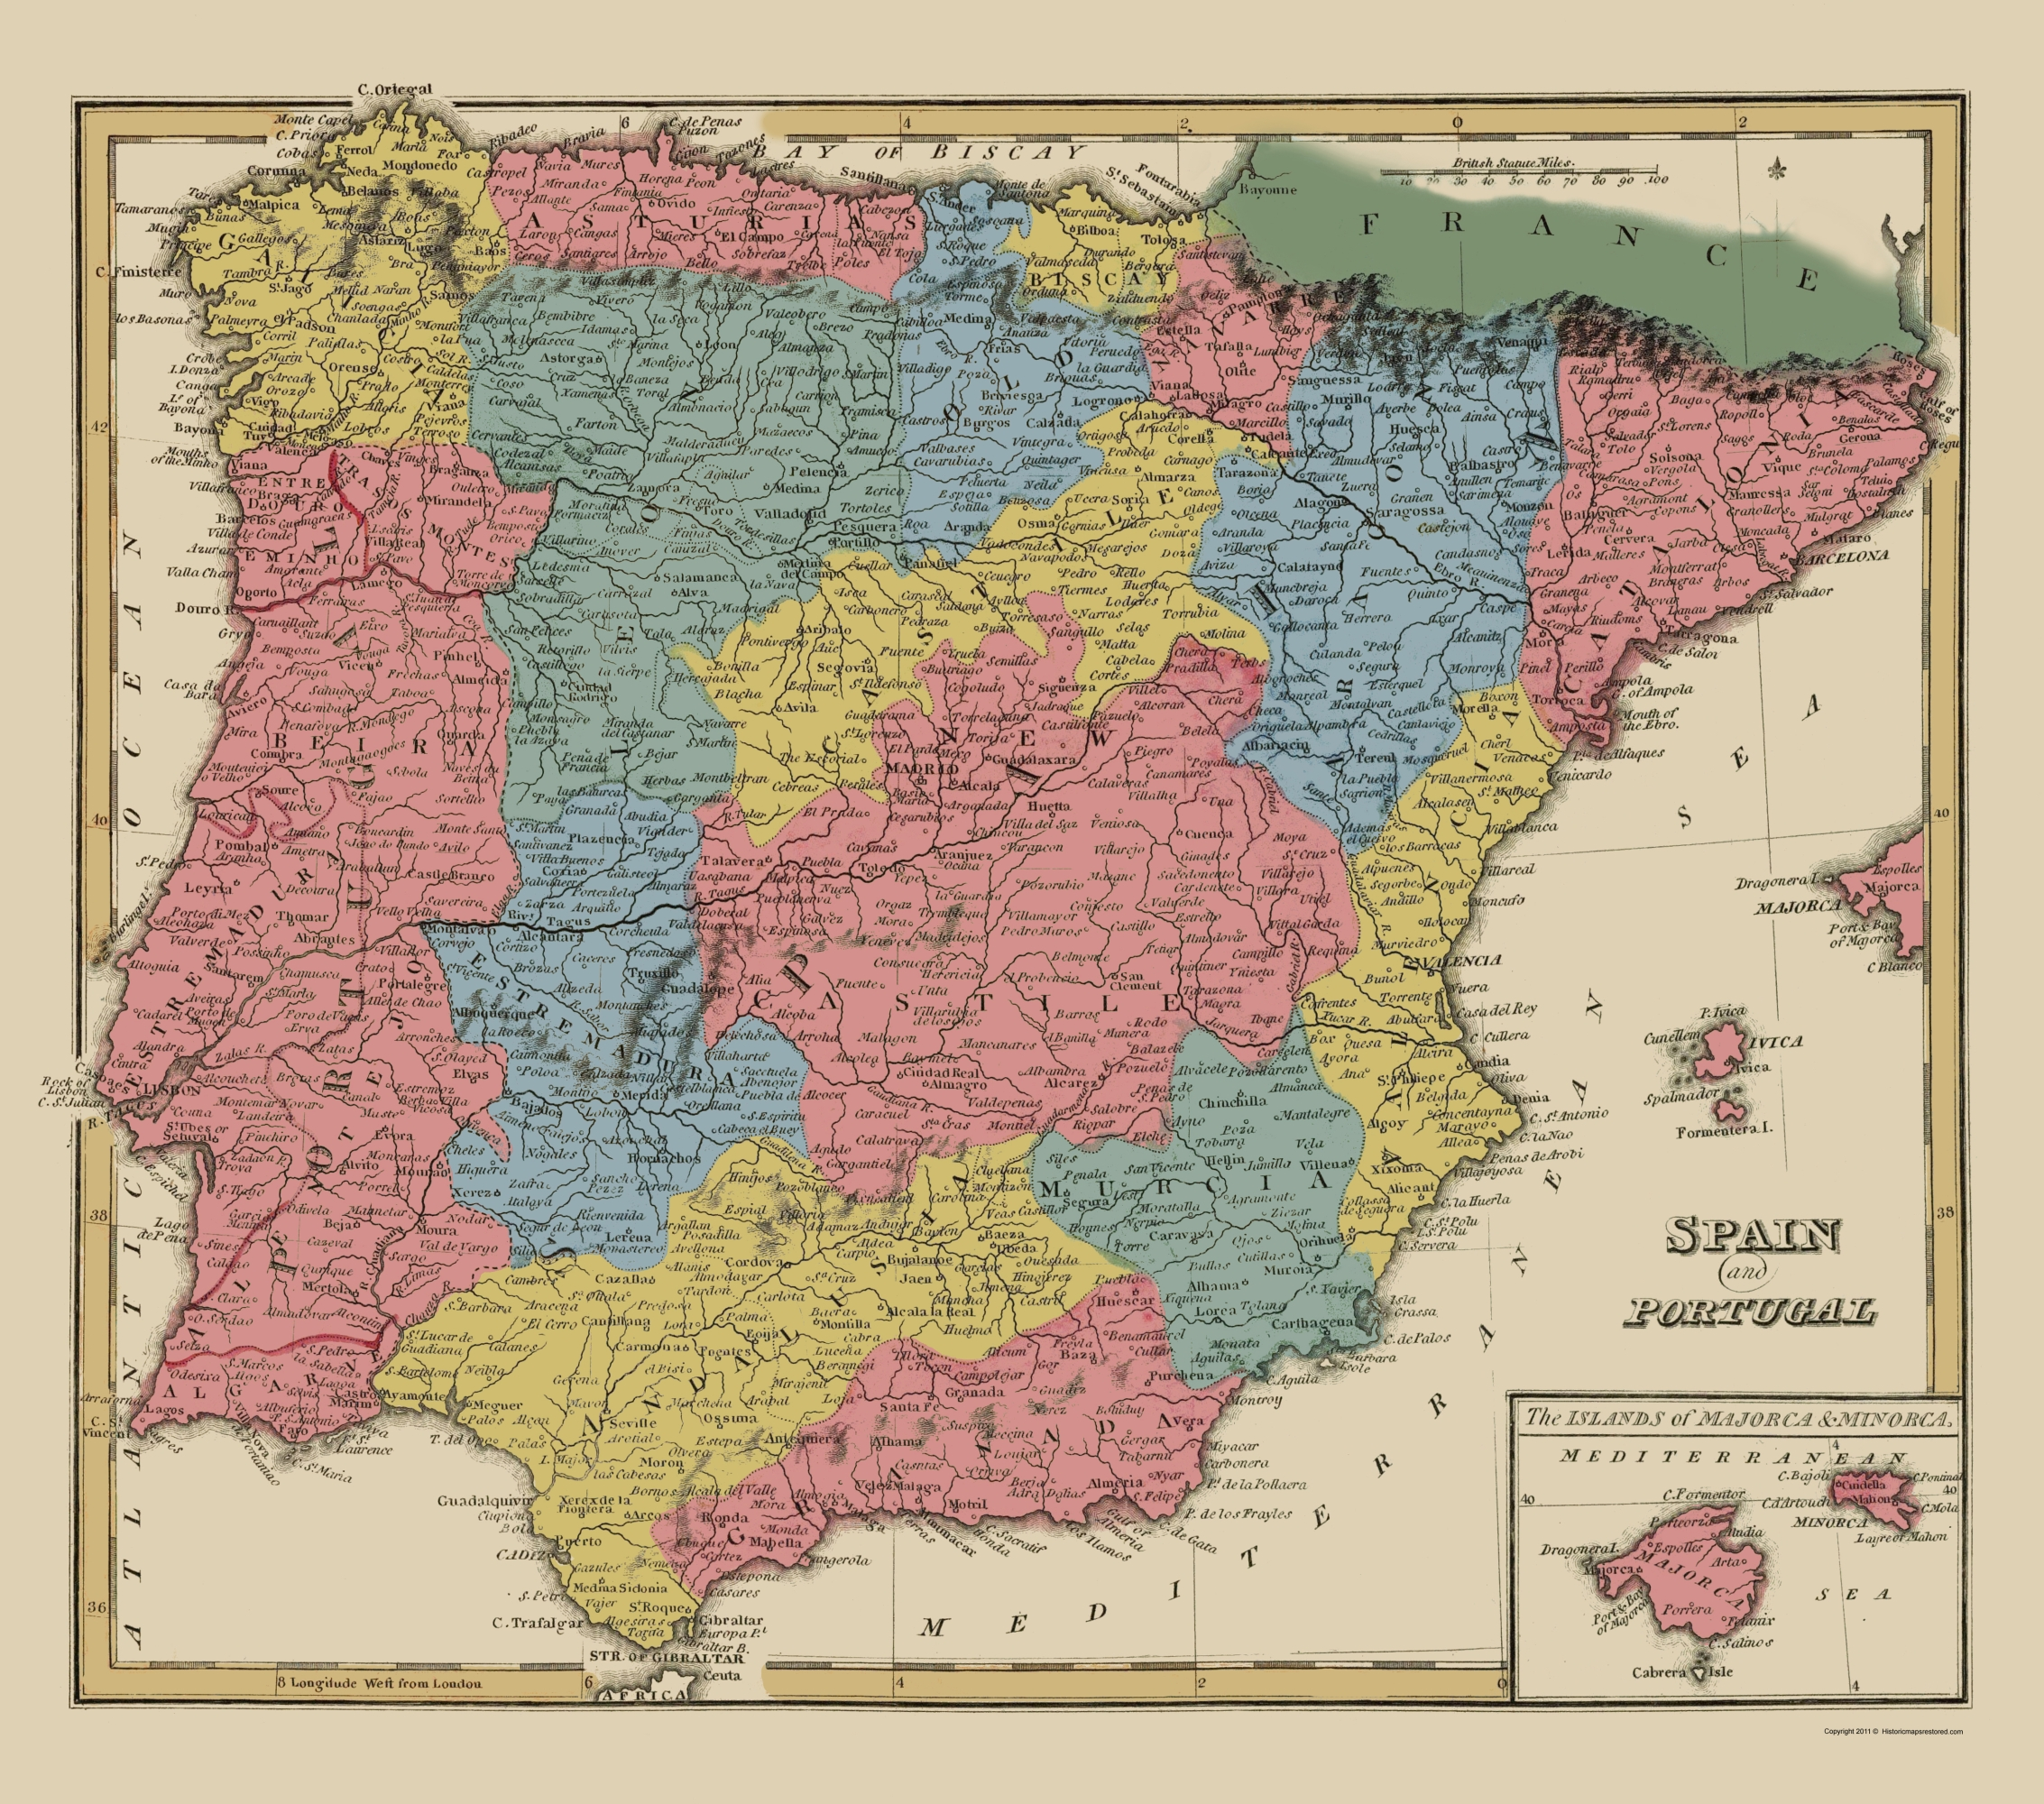 Full Map Of Spain.Old Iberian Peninsula Map Spain And Portugal Lucas 1823 23 X 26 06